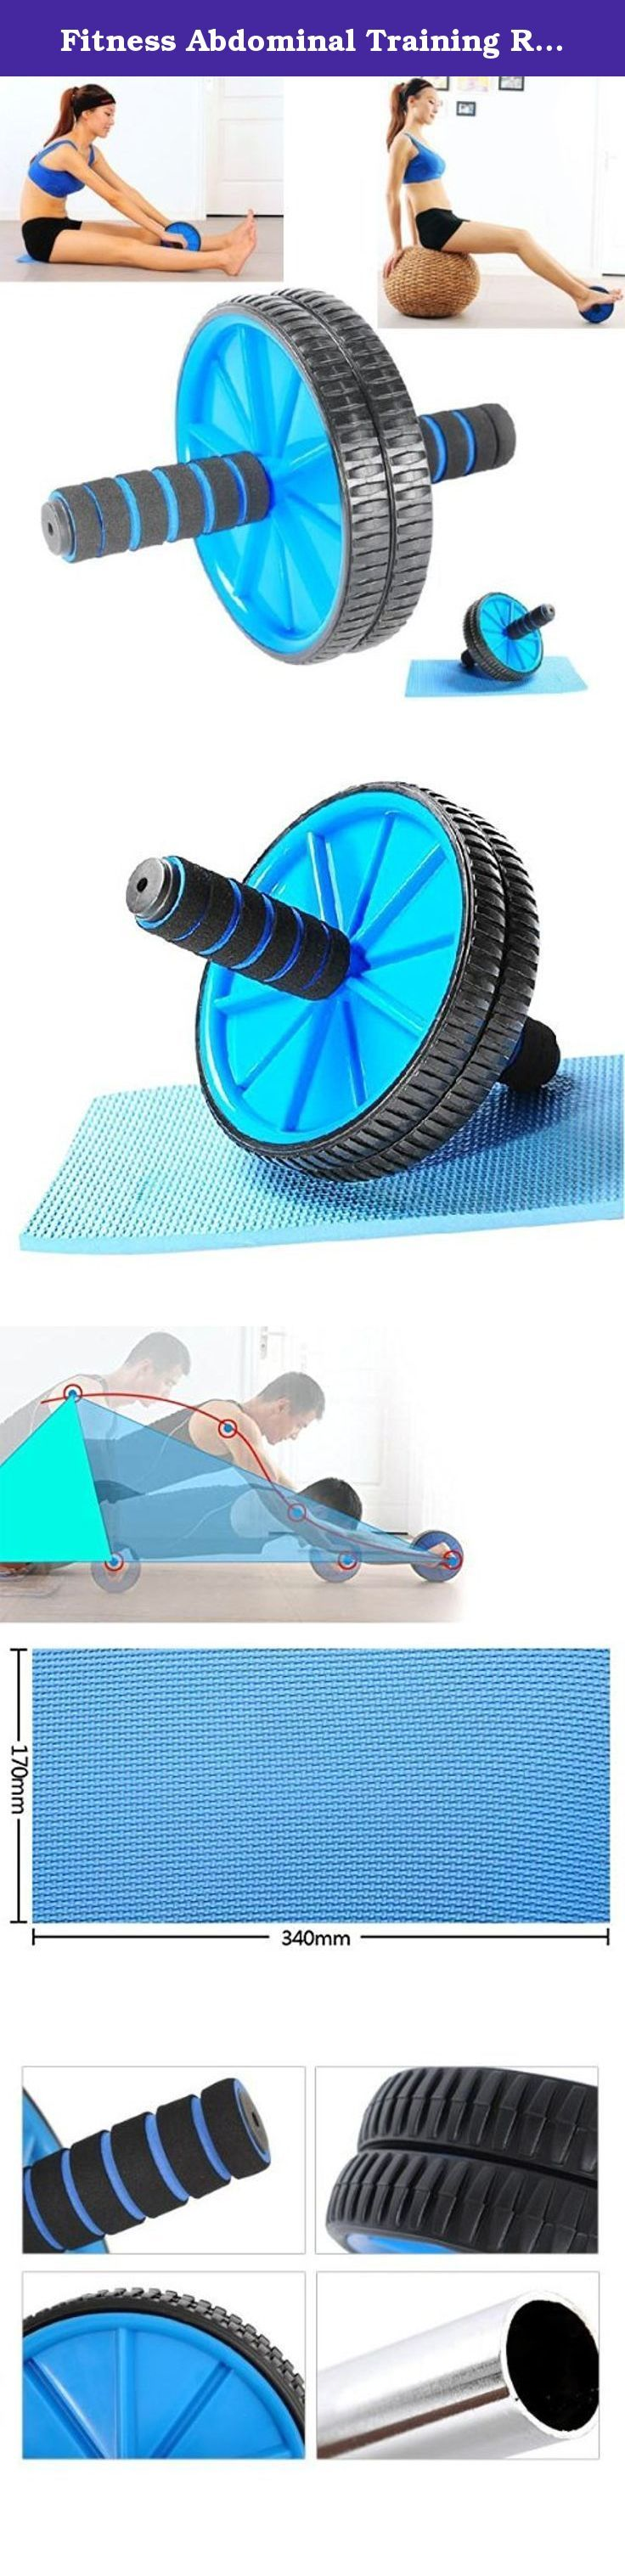 Fitness Abdominal Training Rolling Dual Wheel w/ Kneeling Pad - Blue + Black. Features: * Color: Blue + Black * Material: Steel + PVC + Silicon + Foam * Suitable for tightening up the flabby fat around your belly, waist, hip or arms * Superior engineering plastic, simple in design, aesthetic appearance,strong and durable, easy to operate * Silicon outer edge ring, concavo-convex designed, anti-slip, shock-absorbing and quiet * Thicken 2-color foam handle, improve comfor, sweat-absorbent…